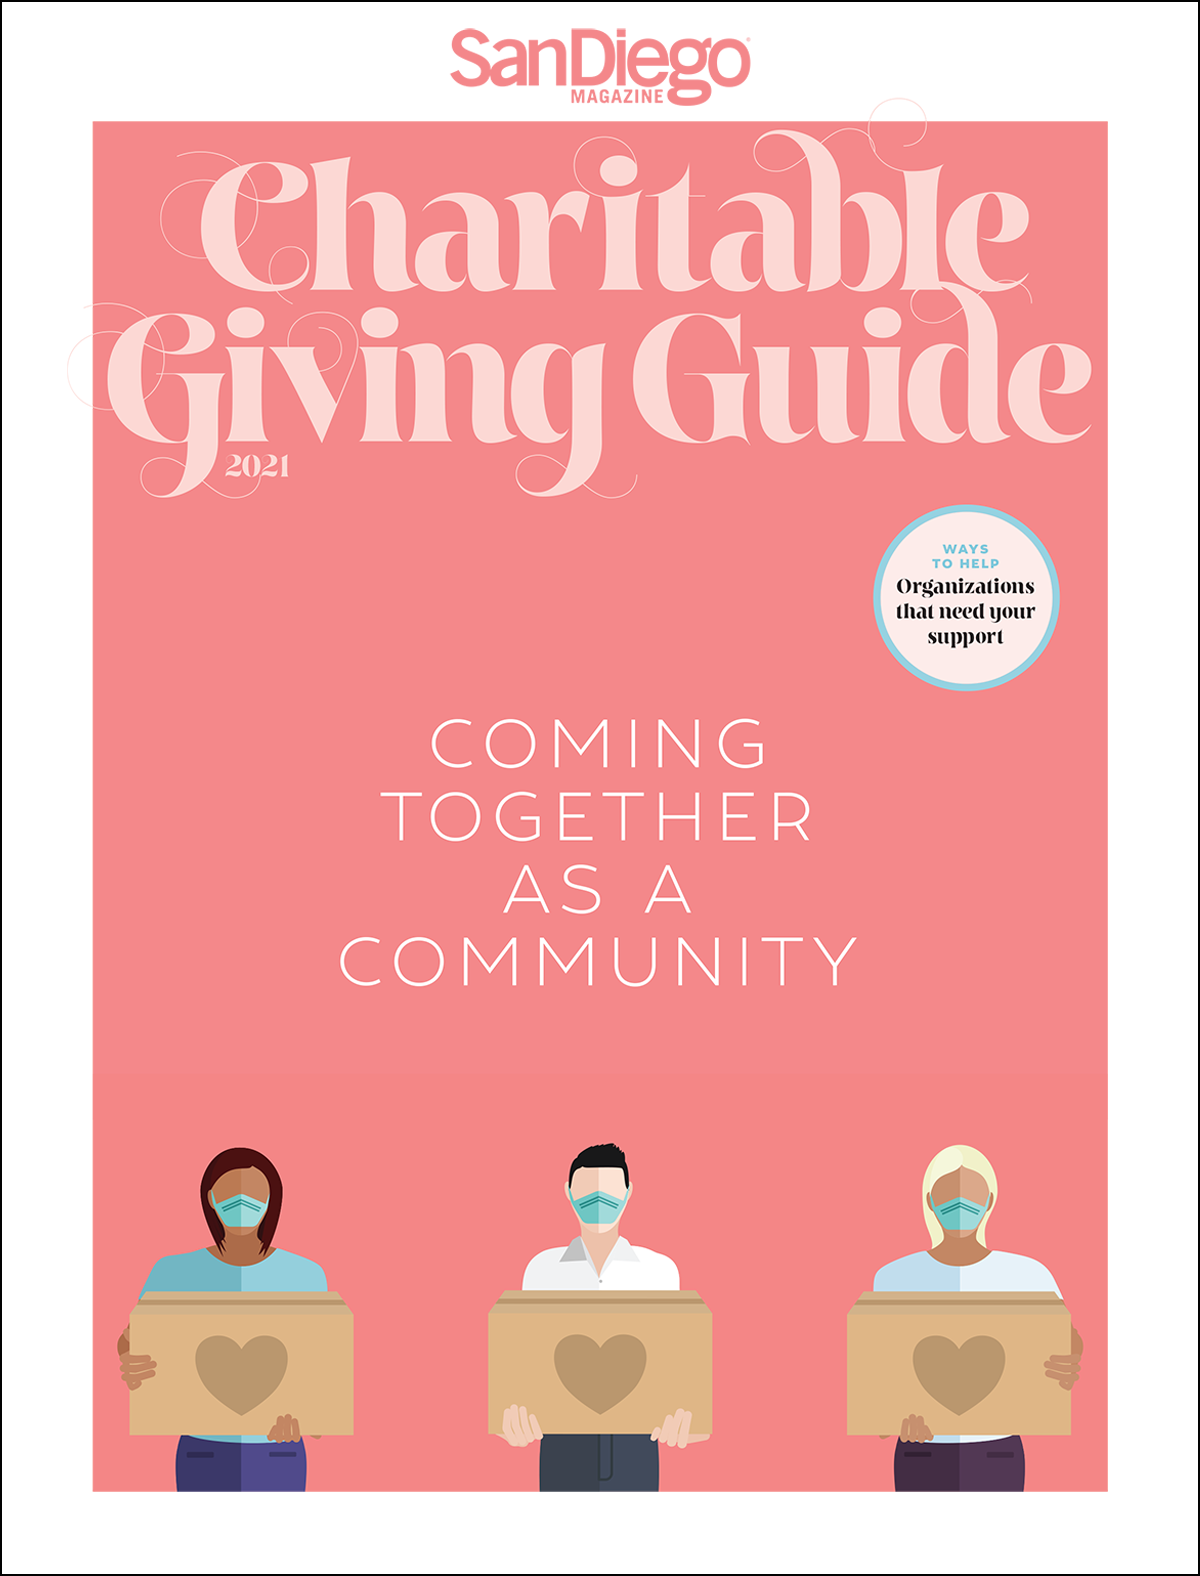 Current issue of Charitable Giving Guide